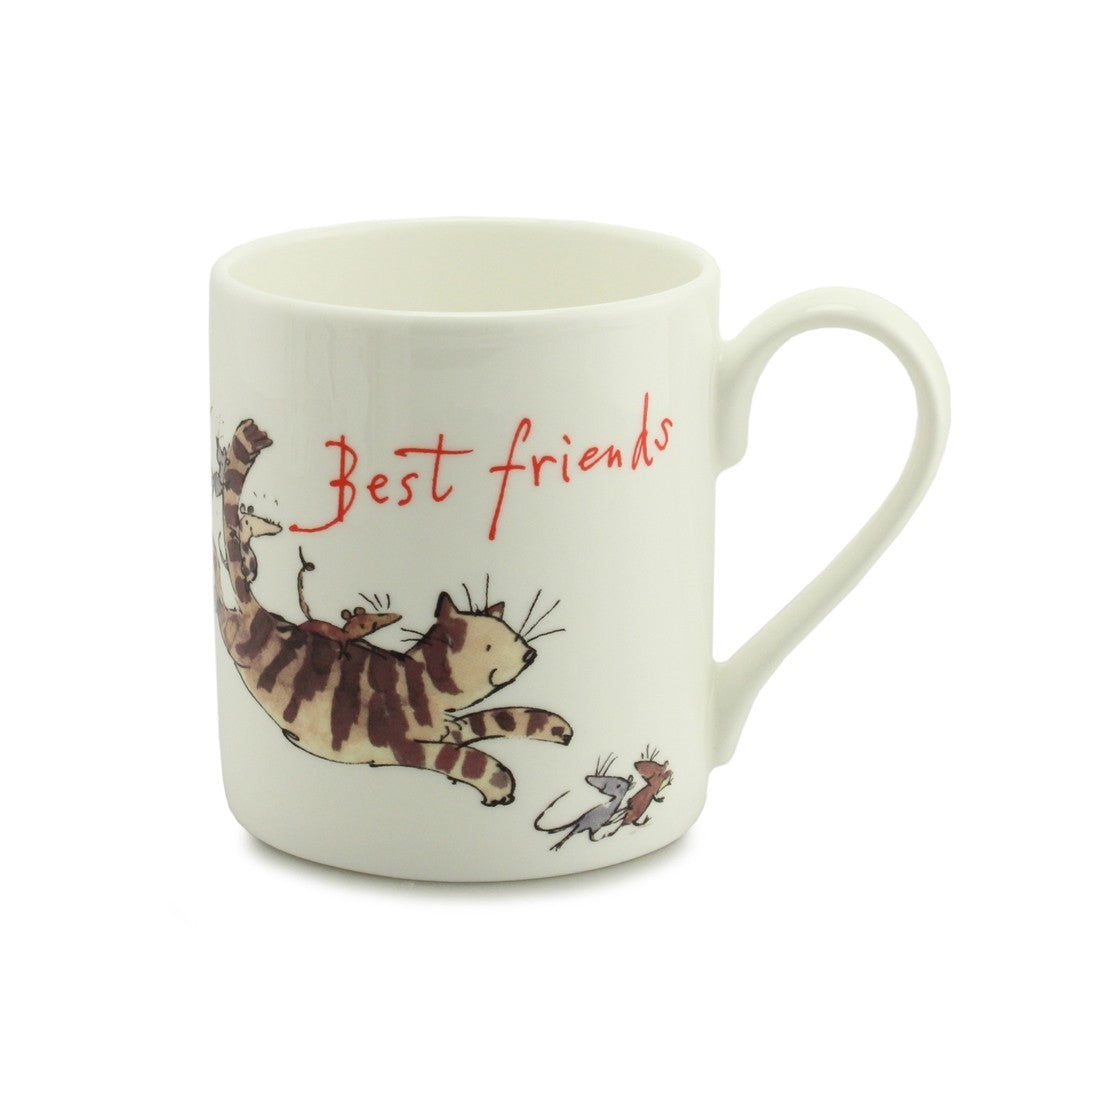 Best Friends China Mug by Quintin Blake